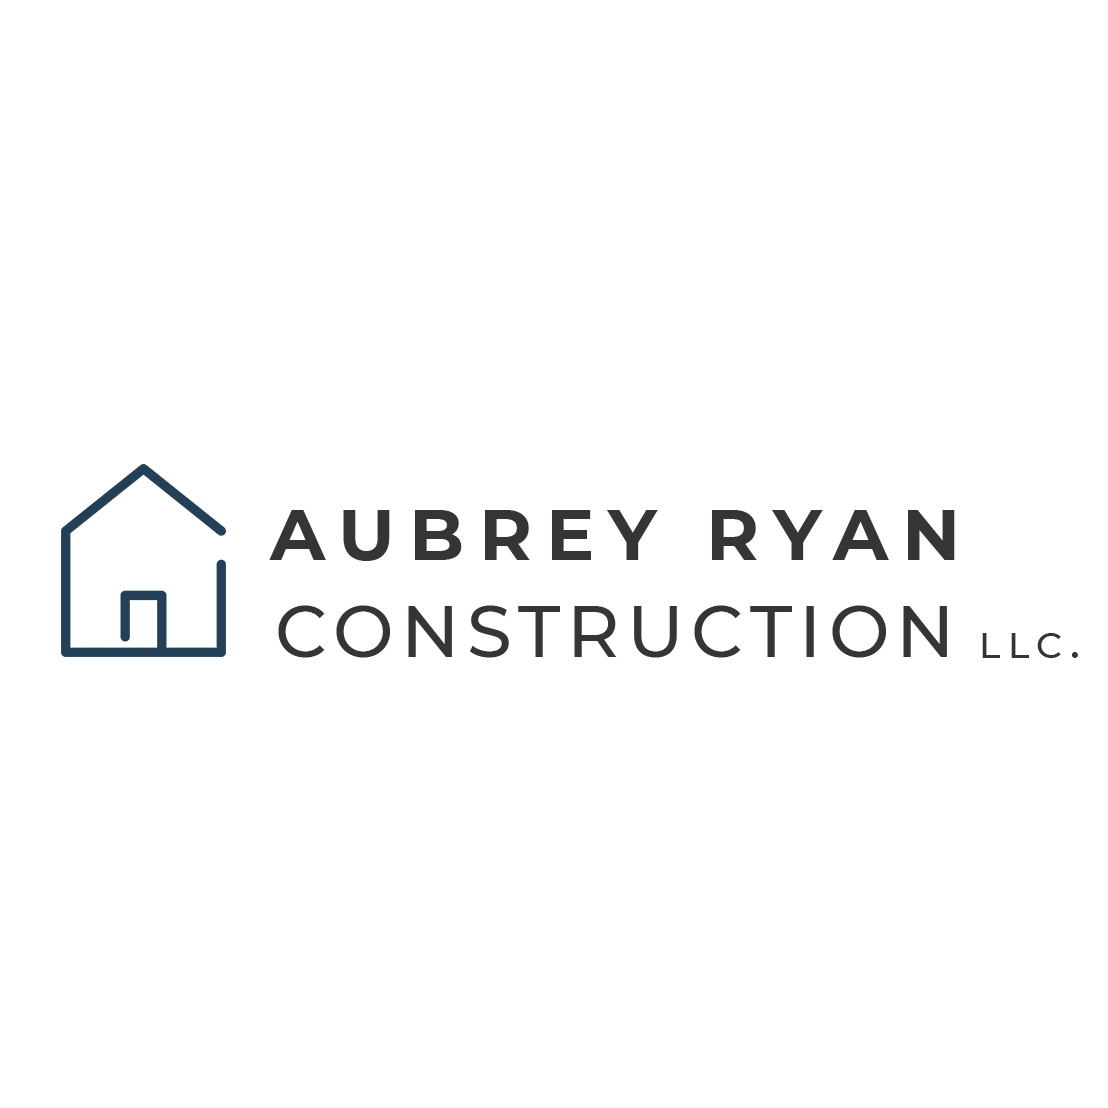 Aubrey Ryan Construction LLC - Midland, TX 79703 - (432)307-0145 | ShowMeLocal.com